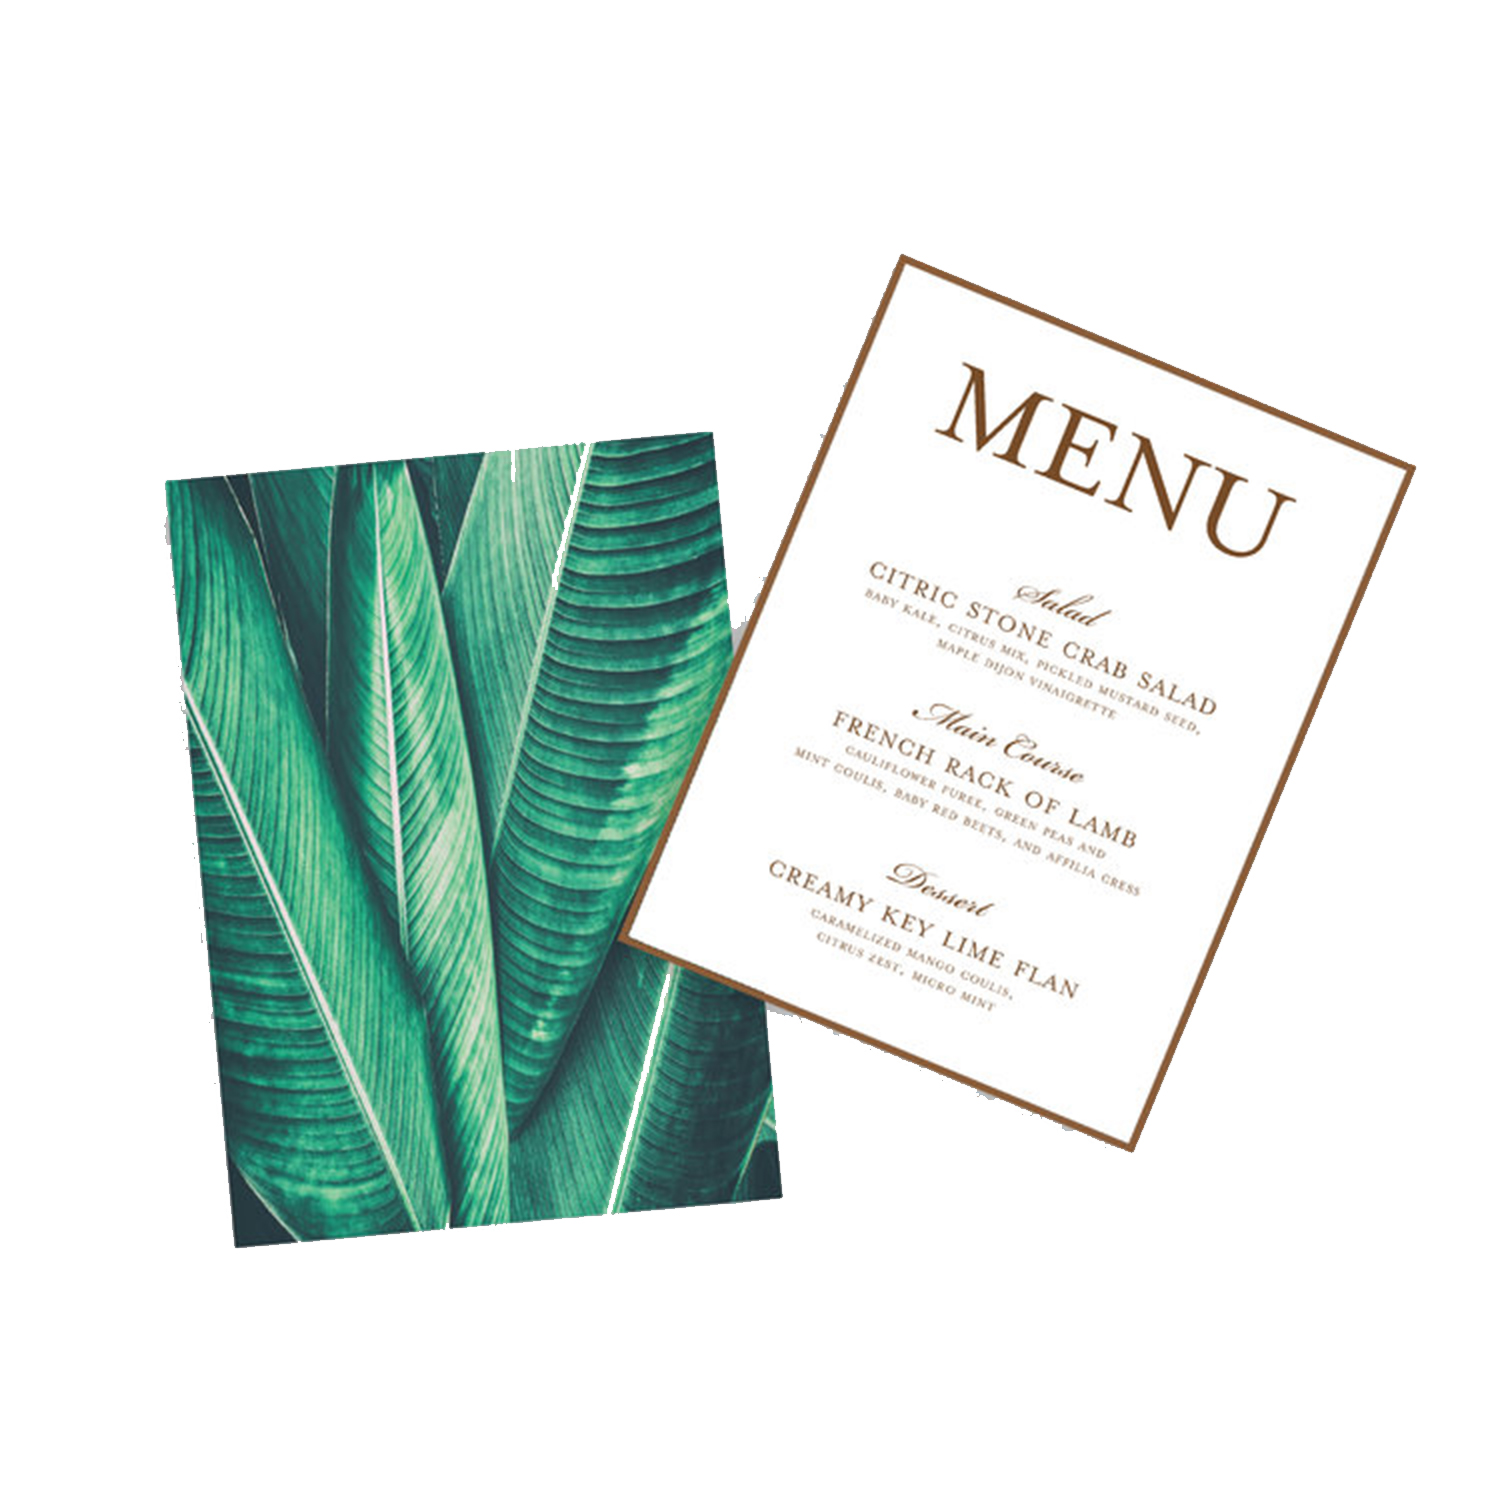 LAKAY menu white background.jpg